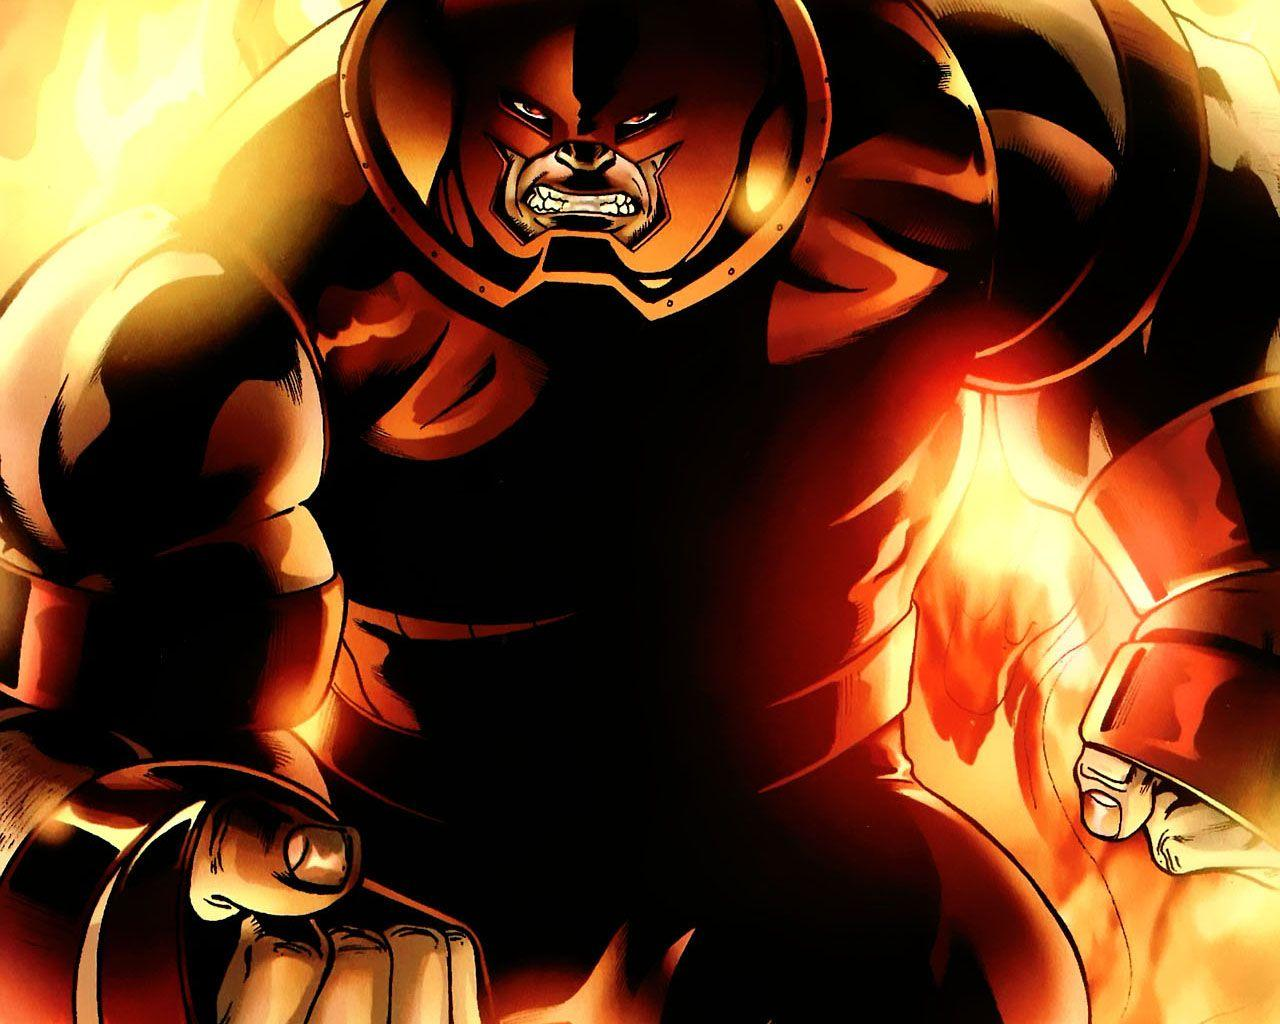 Download Comics Juggernaut Wallpaper 1280x1024 | Wallpoper #396277